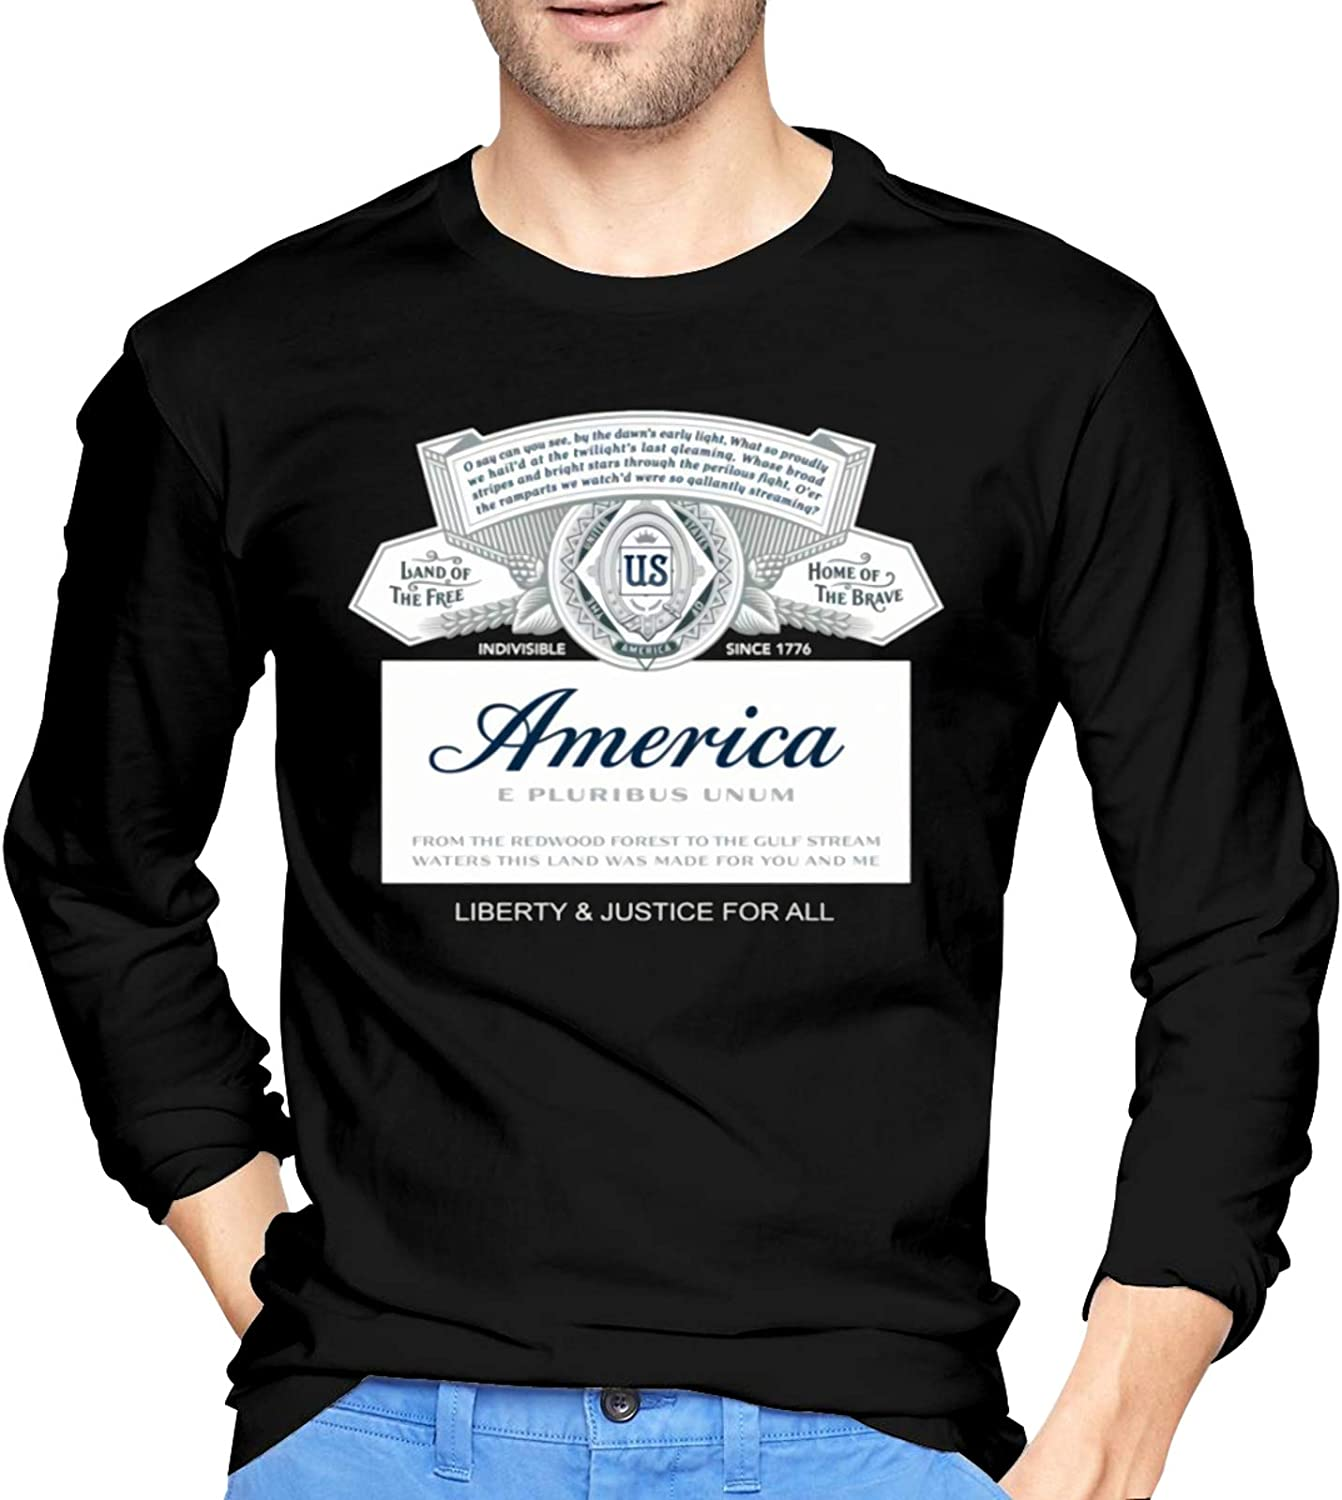 Budweiser America Land of The Free Home of The Brave Men's T-Shirt Top Long Sleeve Casual T Shirt